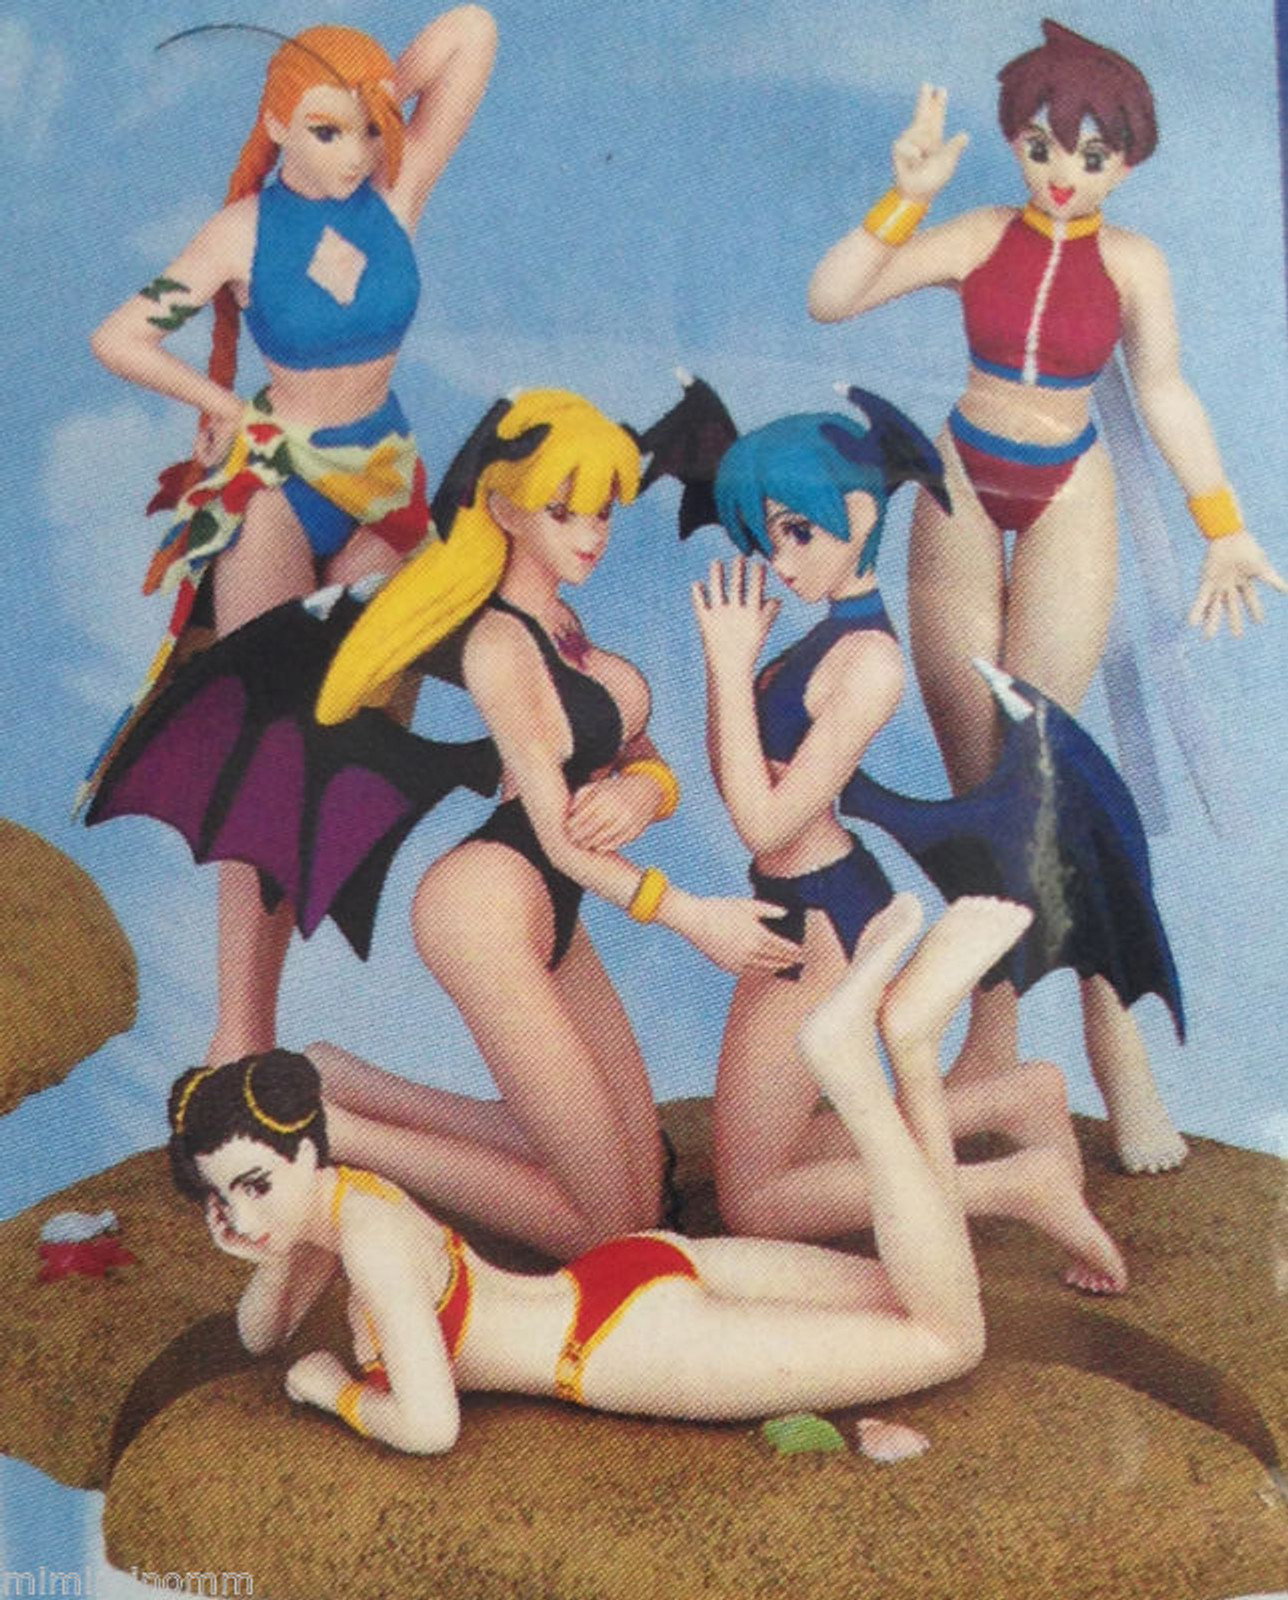 [Set of 5] Street Fighter & Darkstalkers Capcom Character Summer Paradise Figure Another color ver. [Chun-Li / Sakura / Cammy / Morrigan / Lilith] JAPAN GAME